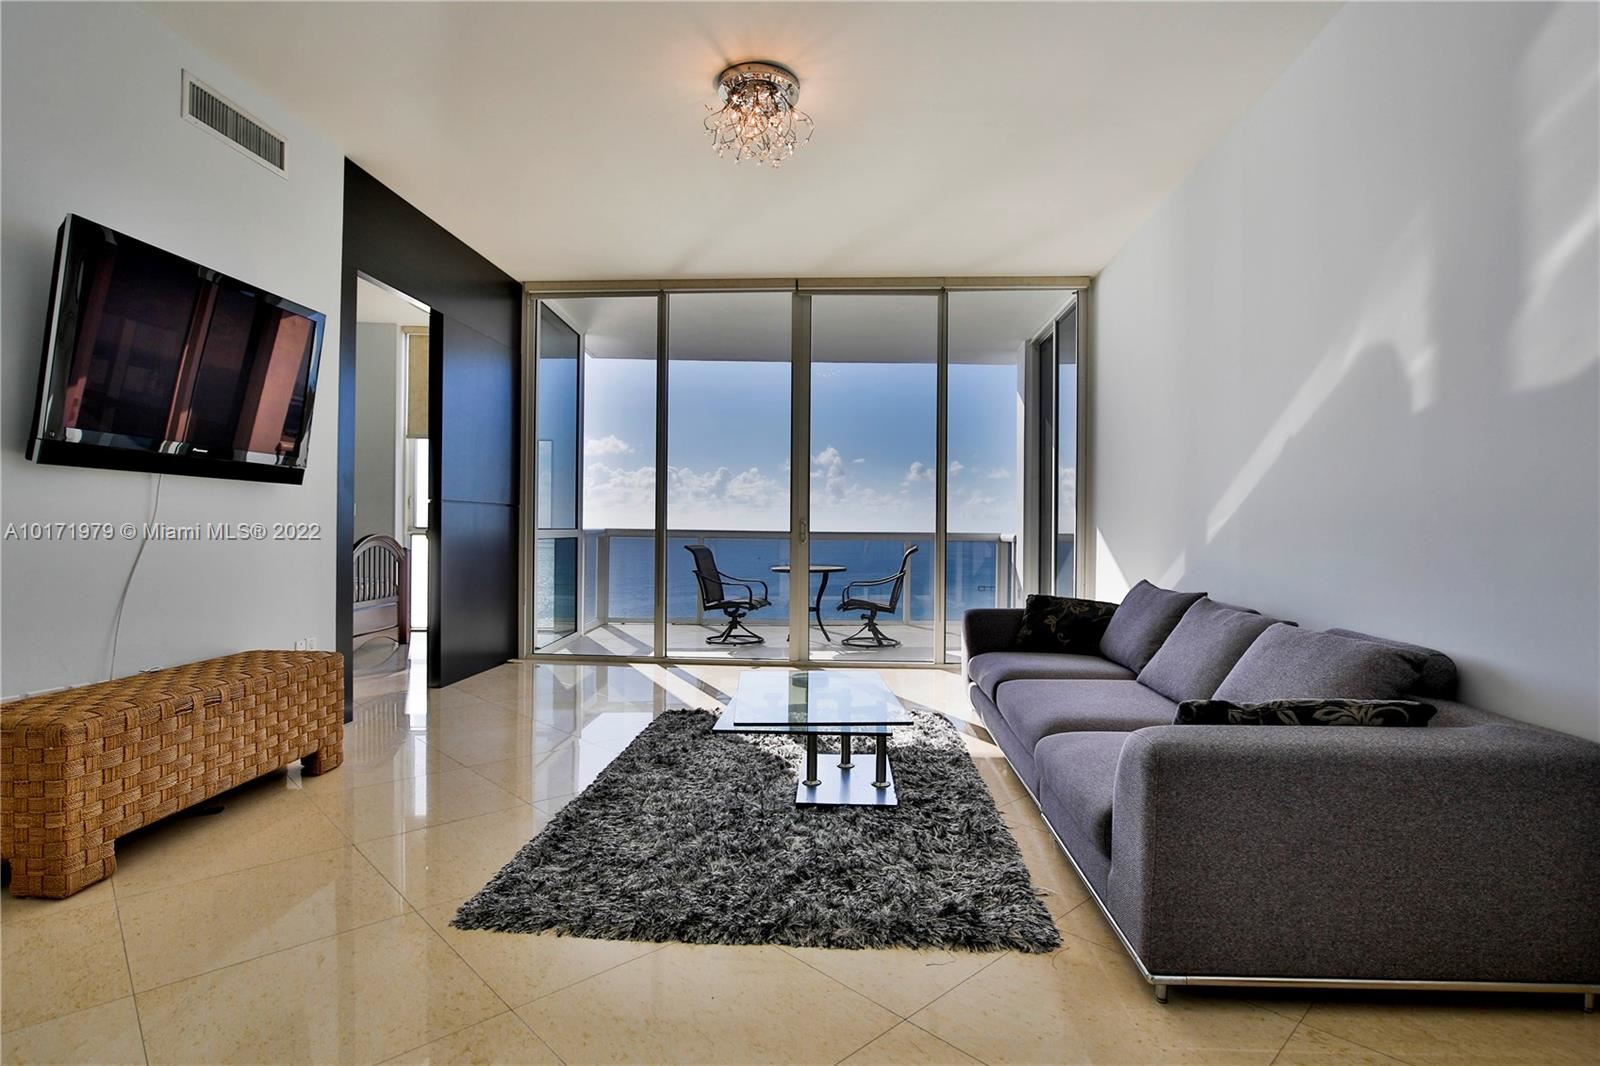 18101 Collins Ave #4604, Sunny Isles, FL 33160 - #: A10171979